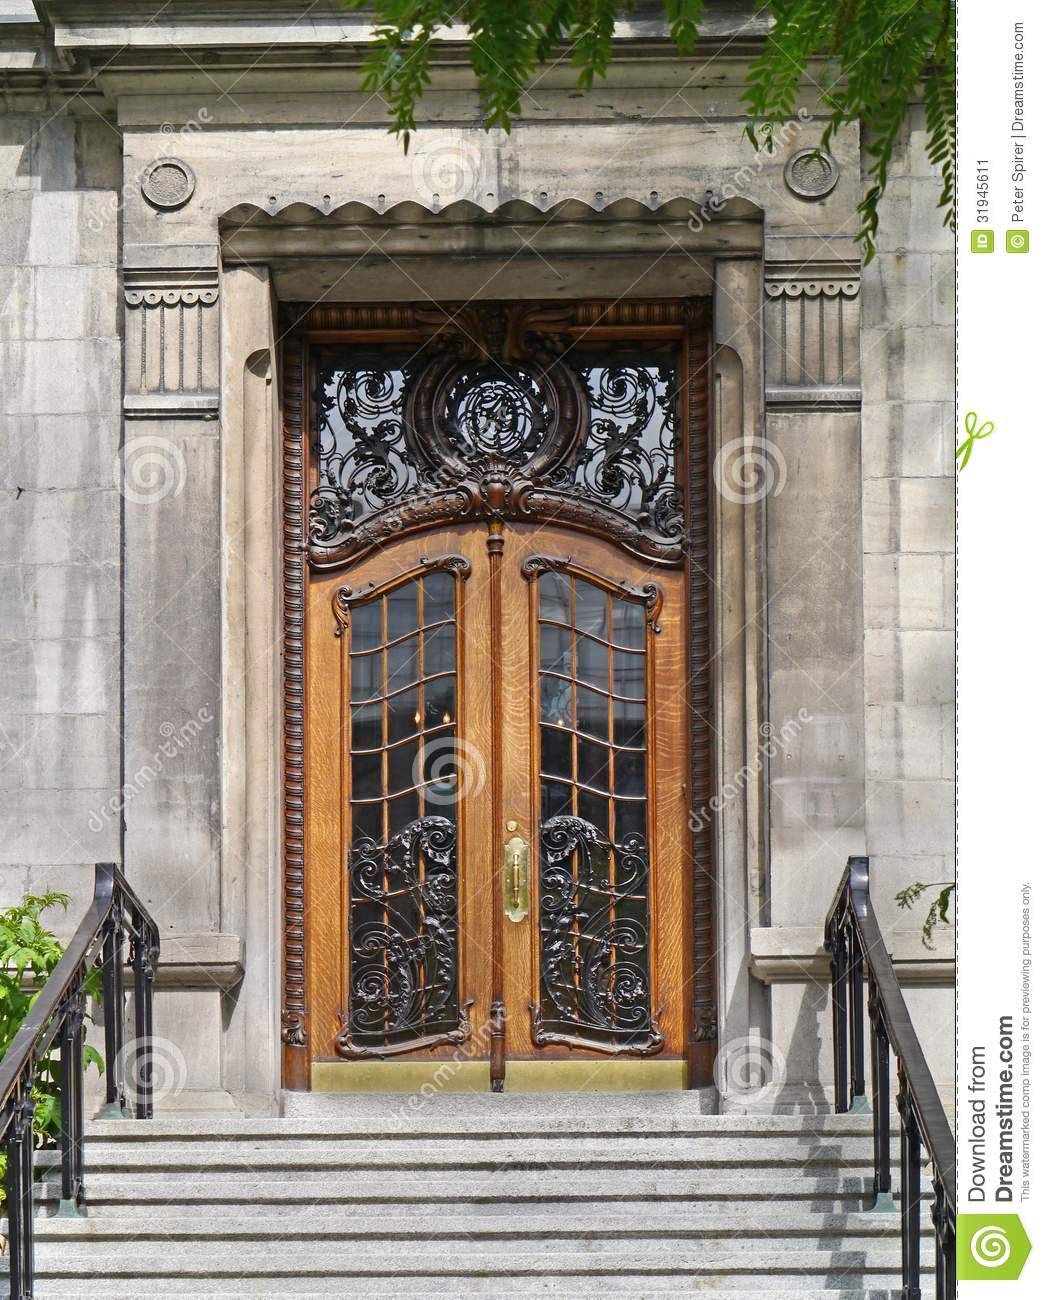 elegant-front-door-old-apartment-building-hotel-31945611.jpg (1045 ...